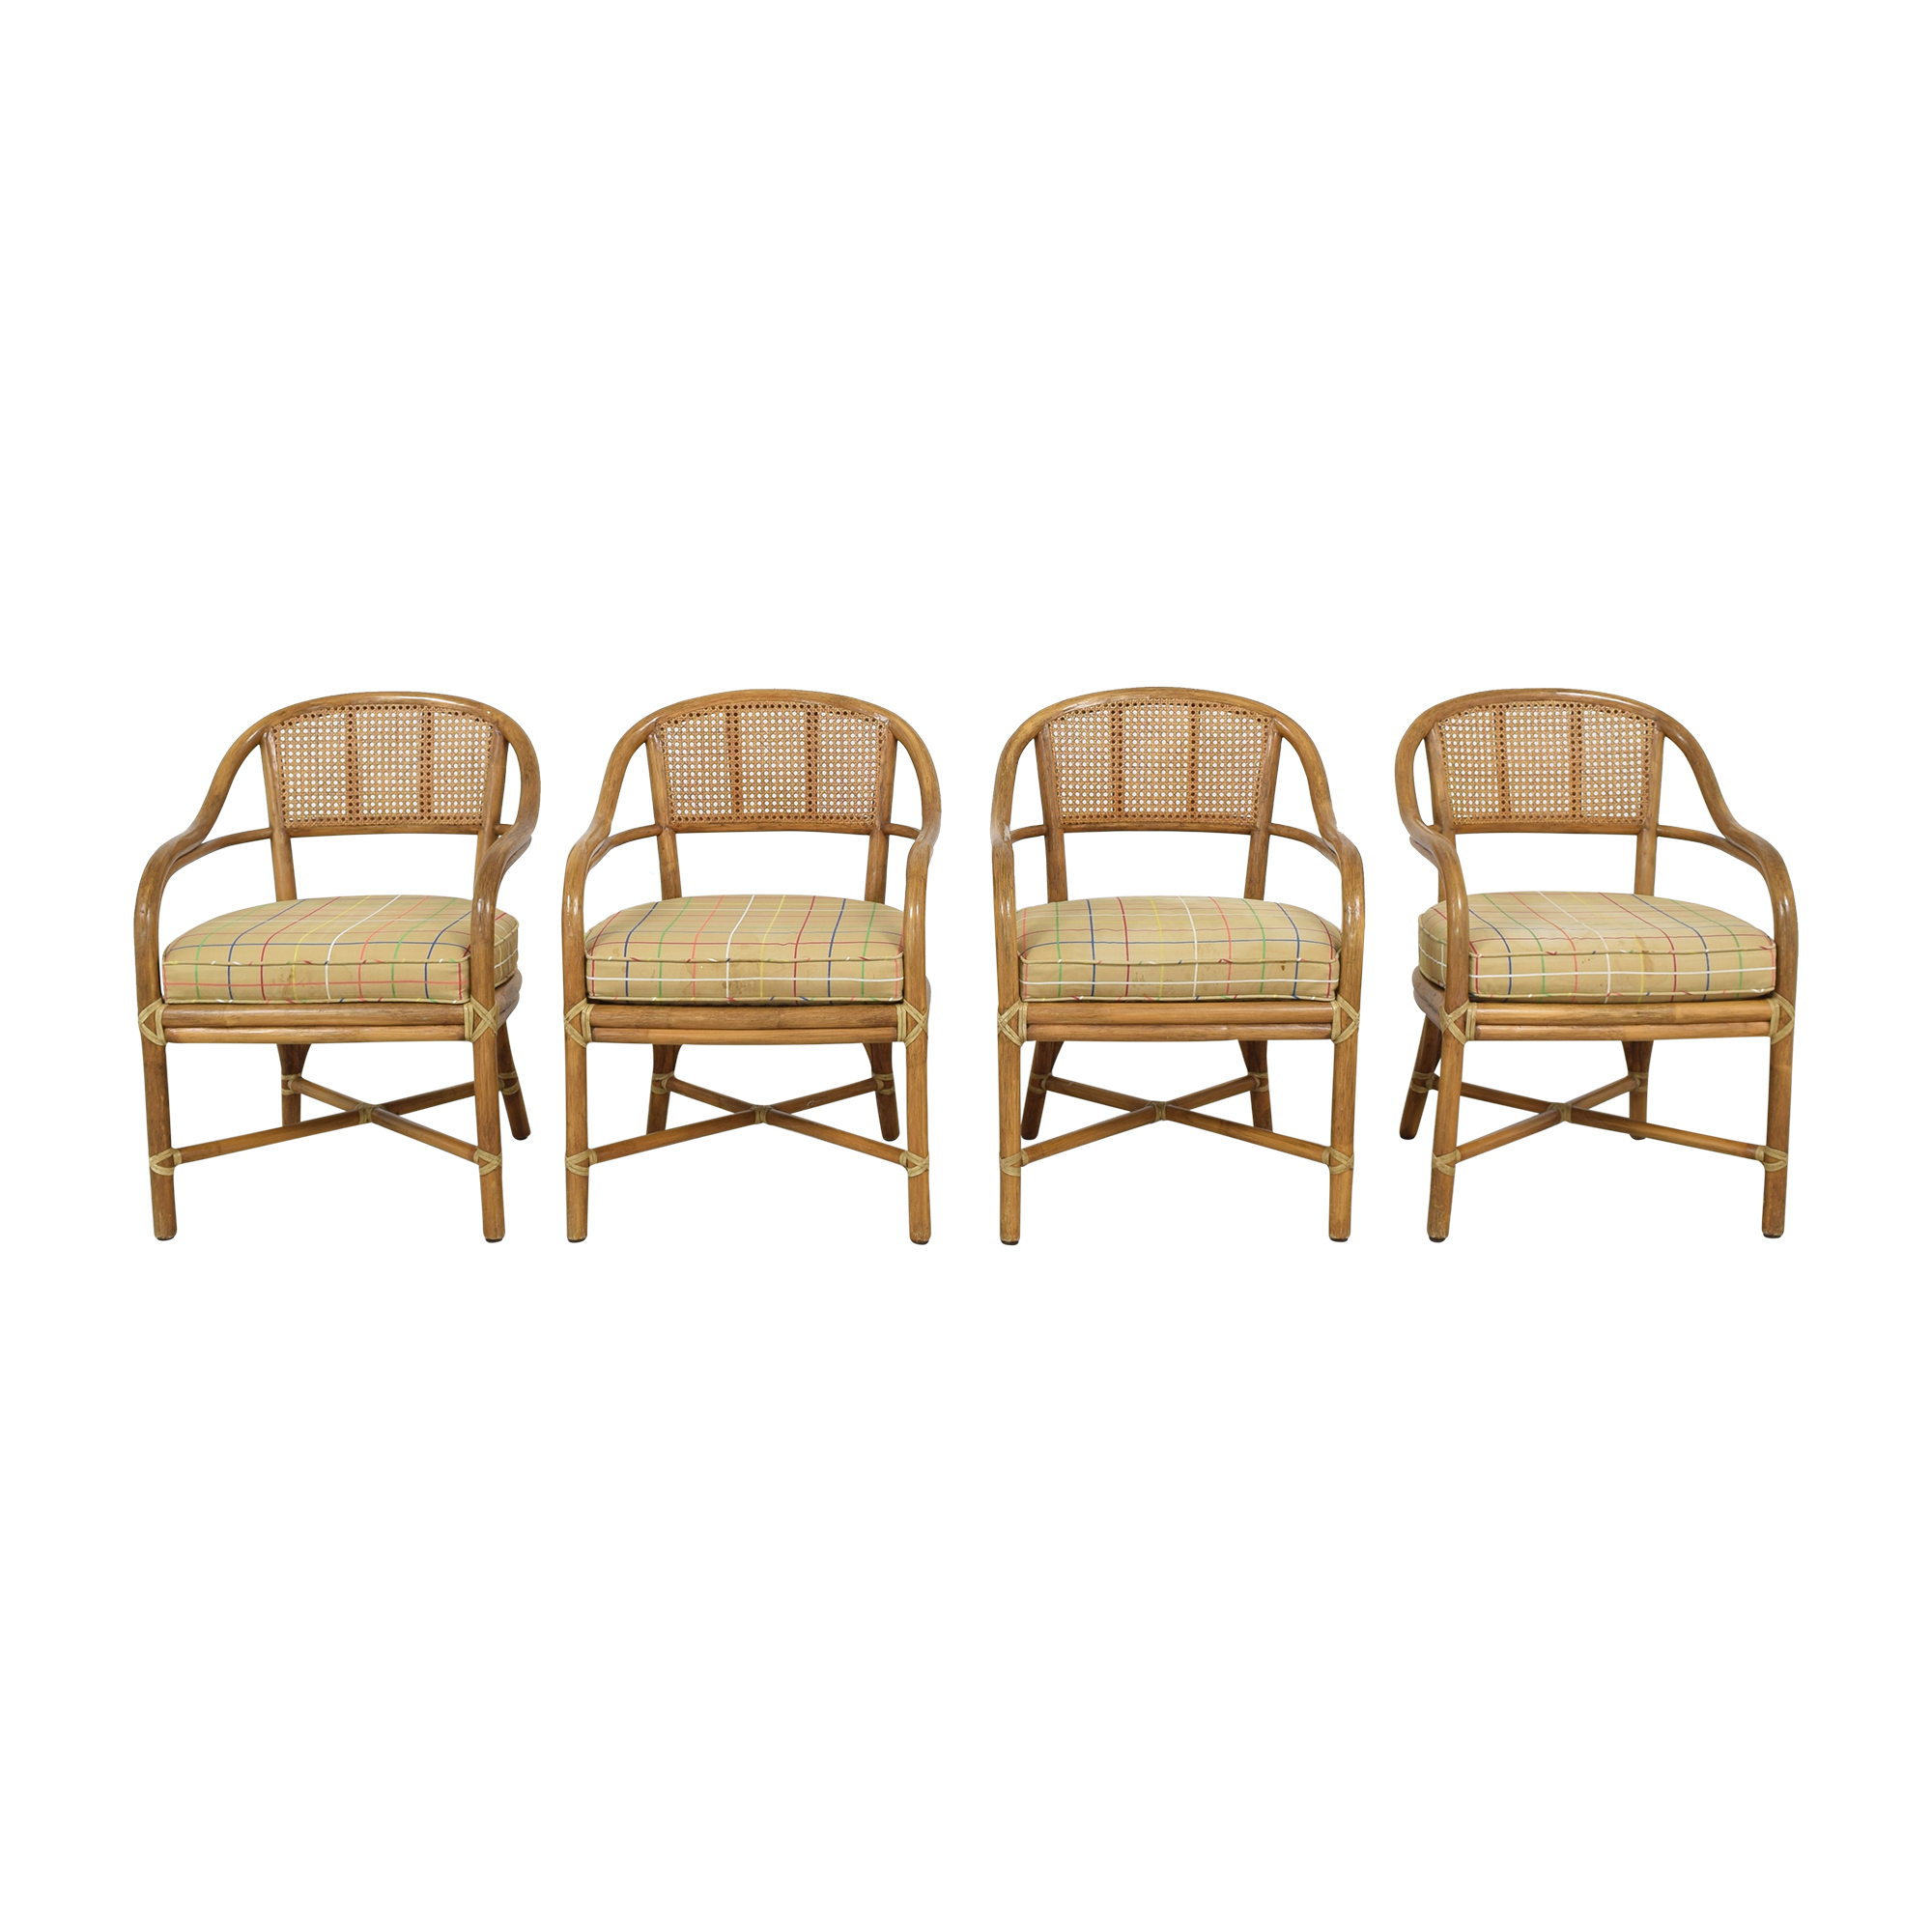 McGuire McGuire Wicker Dining Chairs on sale